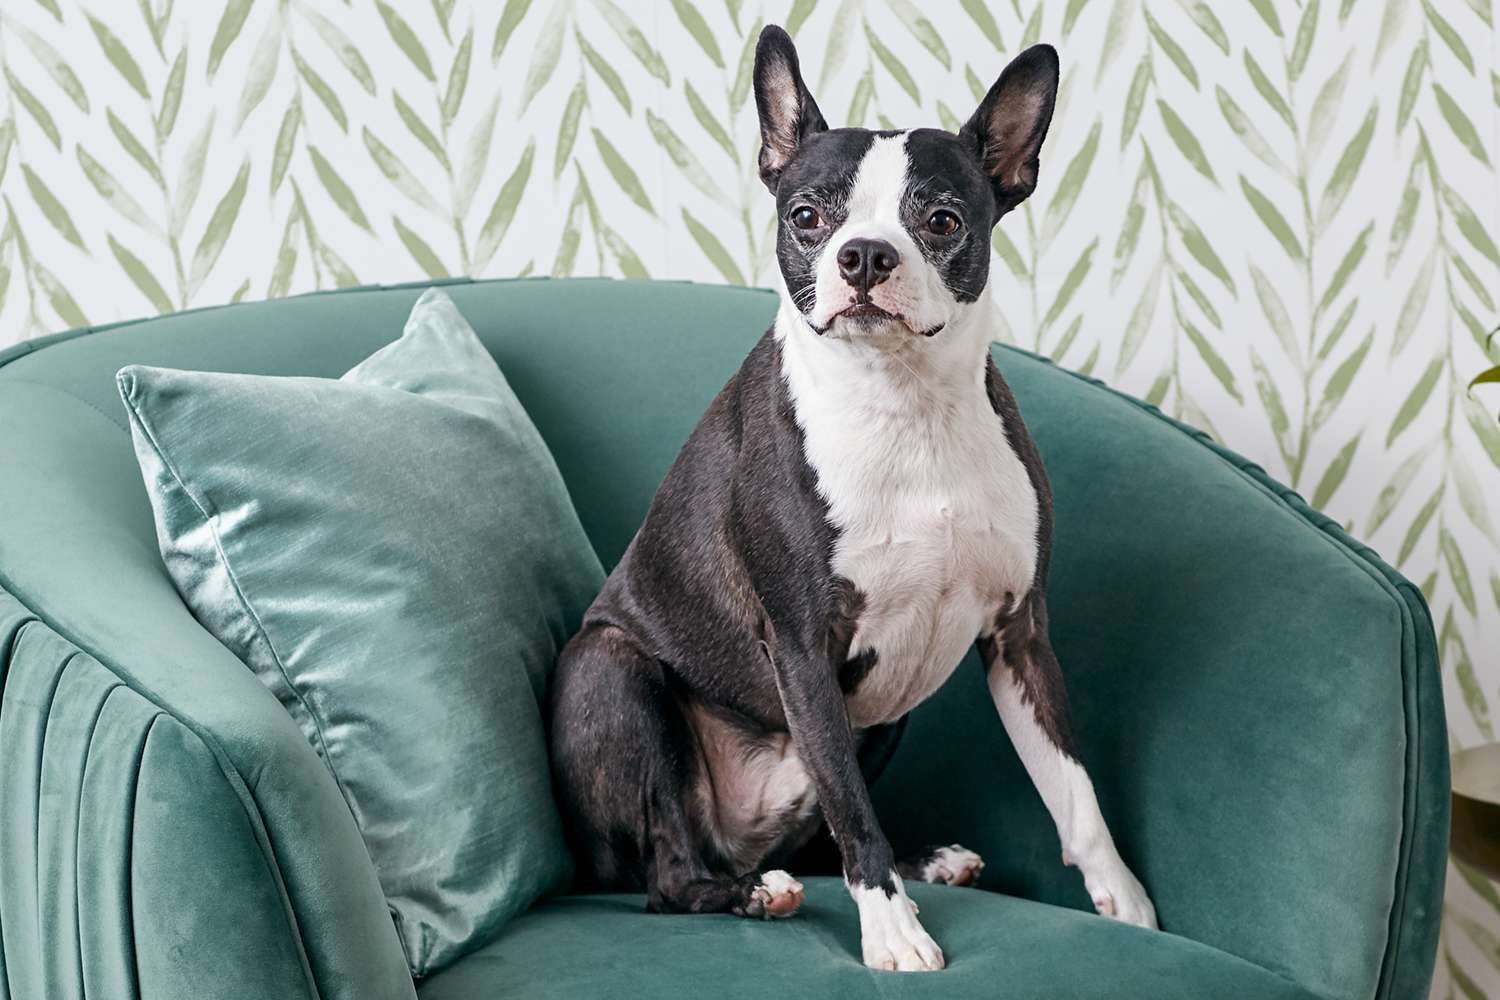 Boston terrier sitting on a chair